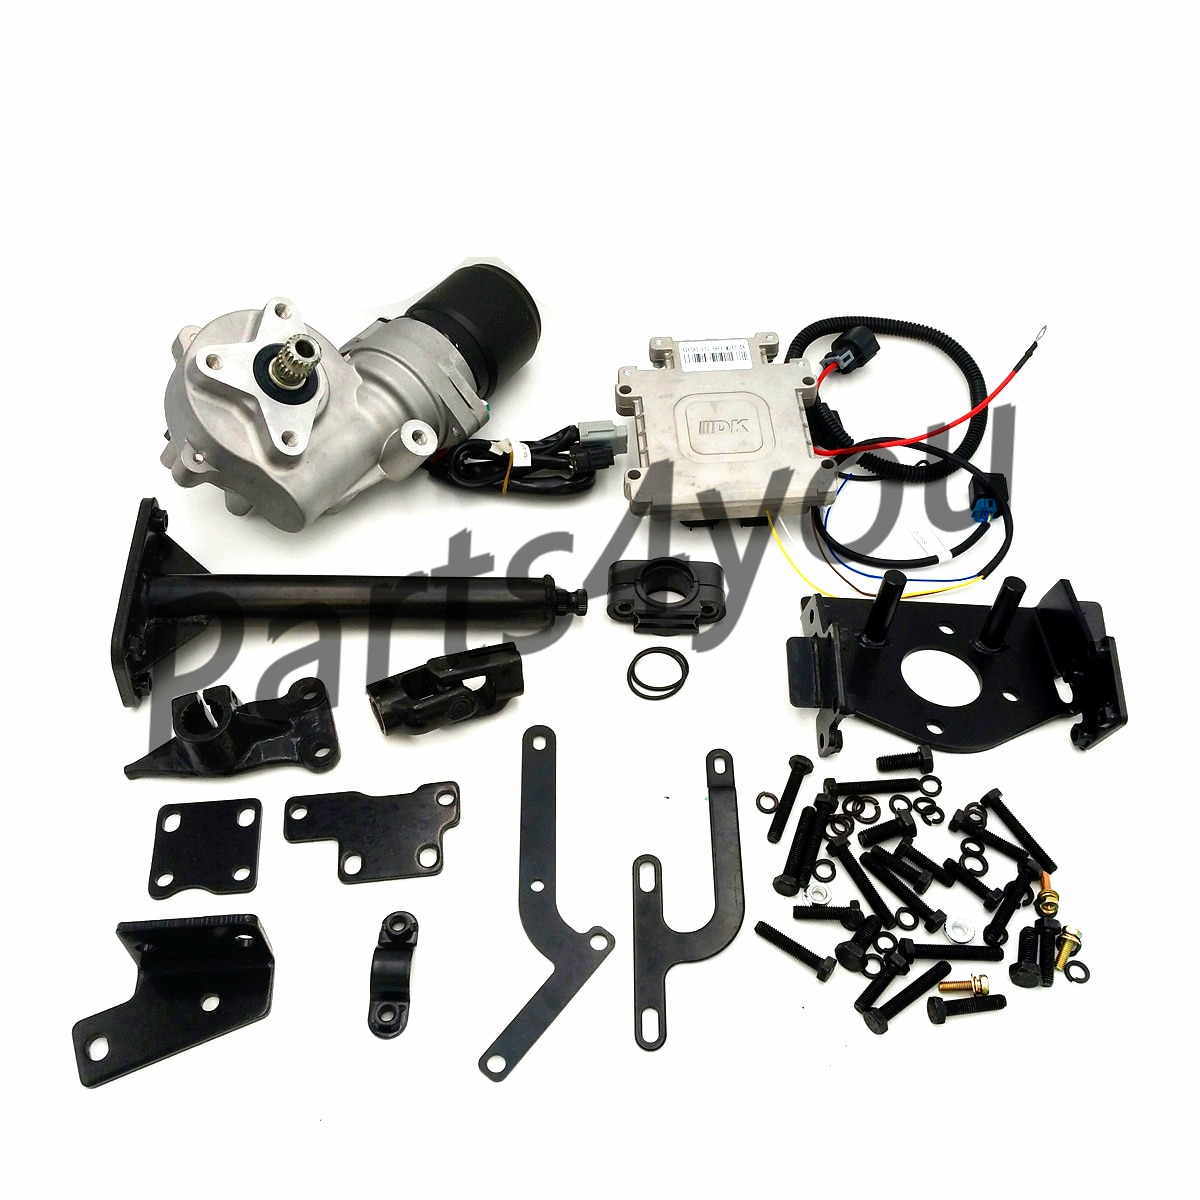 CFMoto X5 Electric Power Steering EPS Paeps 7002 Direction controller X5HO 500 450 EFI 9CR6-103100-00001 enlarge